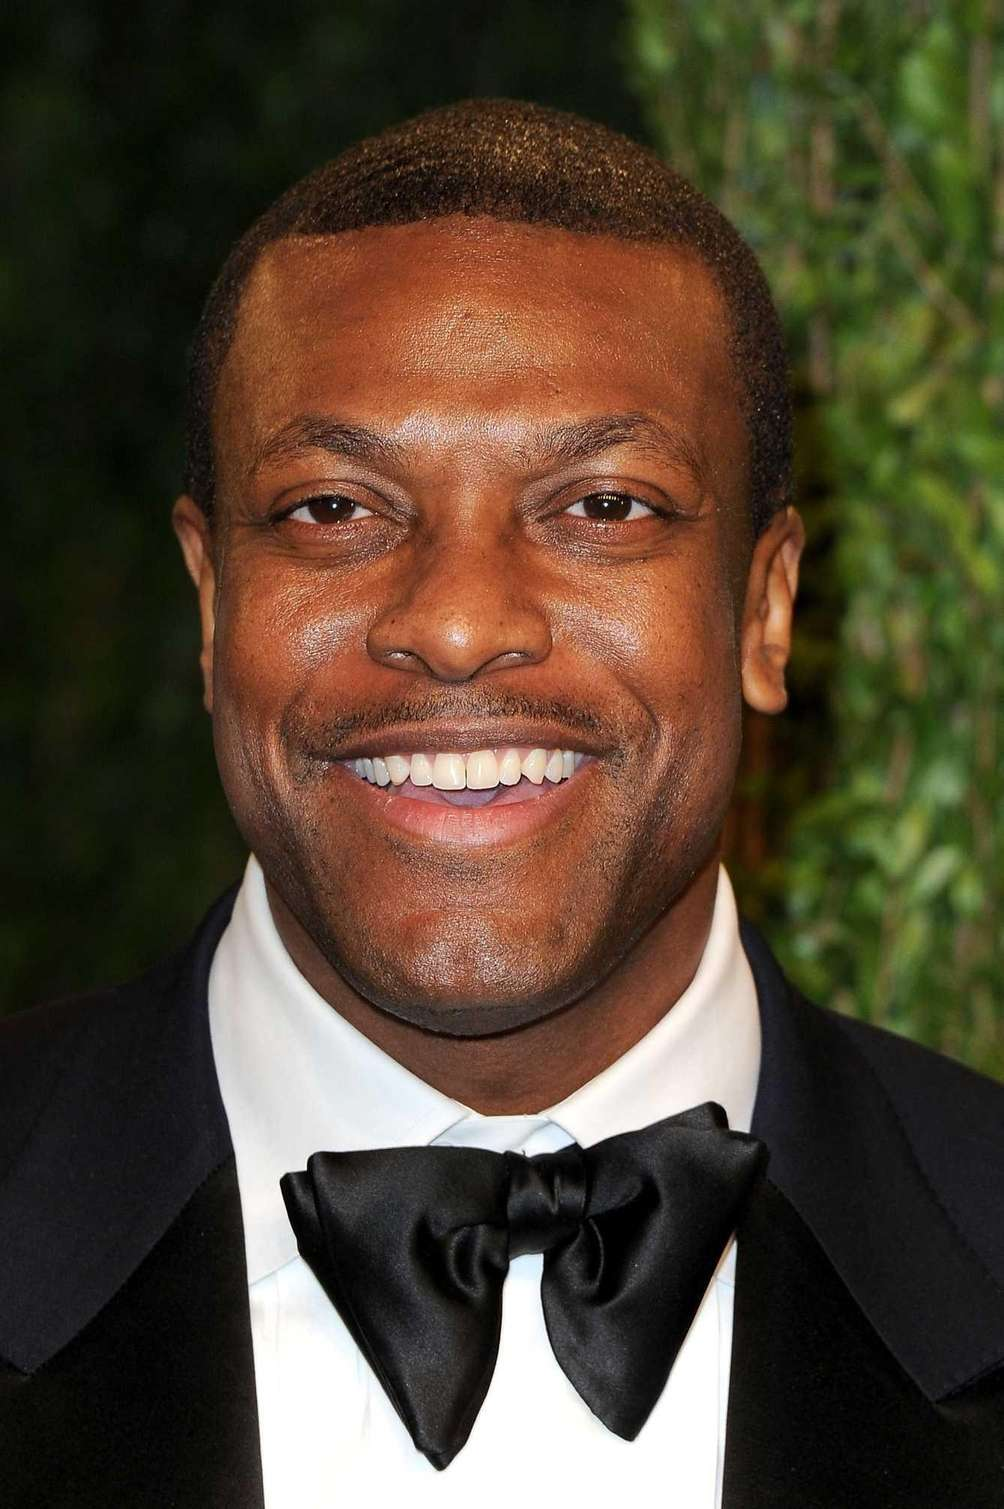 The IRS hit Chris Tucker with a $2.5